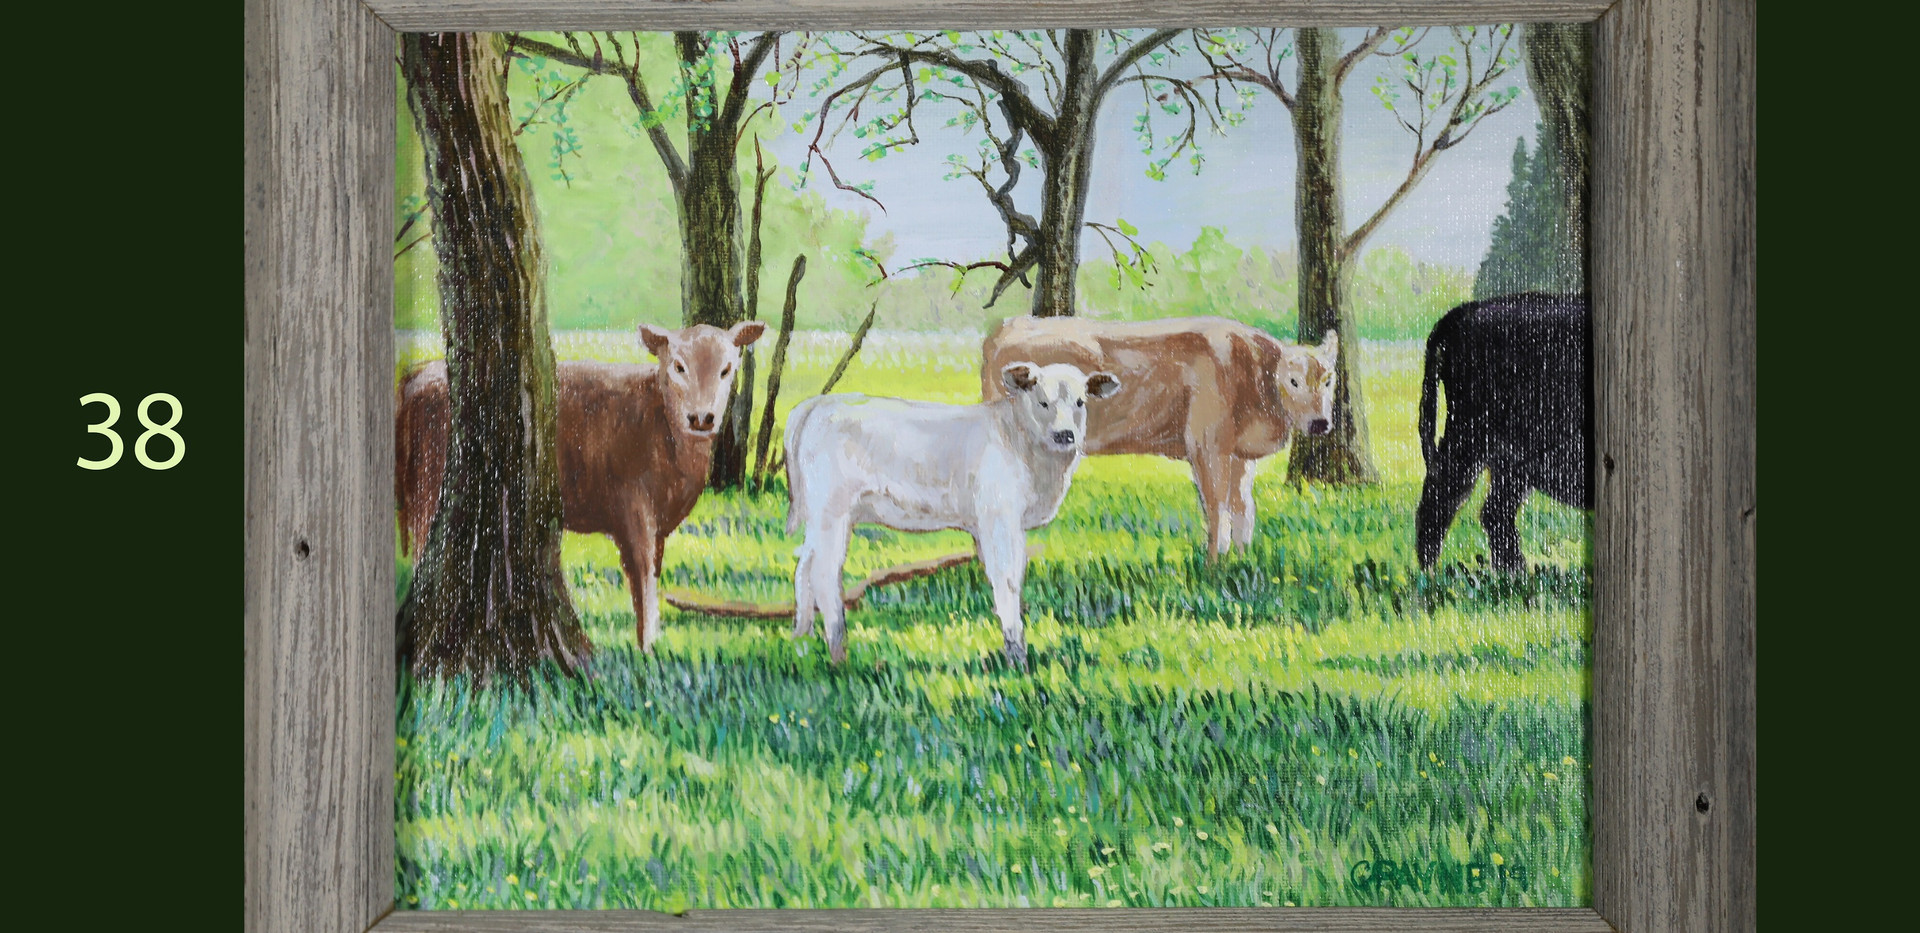 Wallahatchie Cows